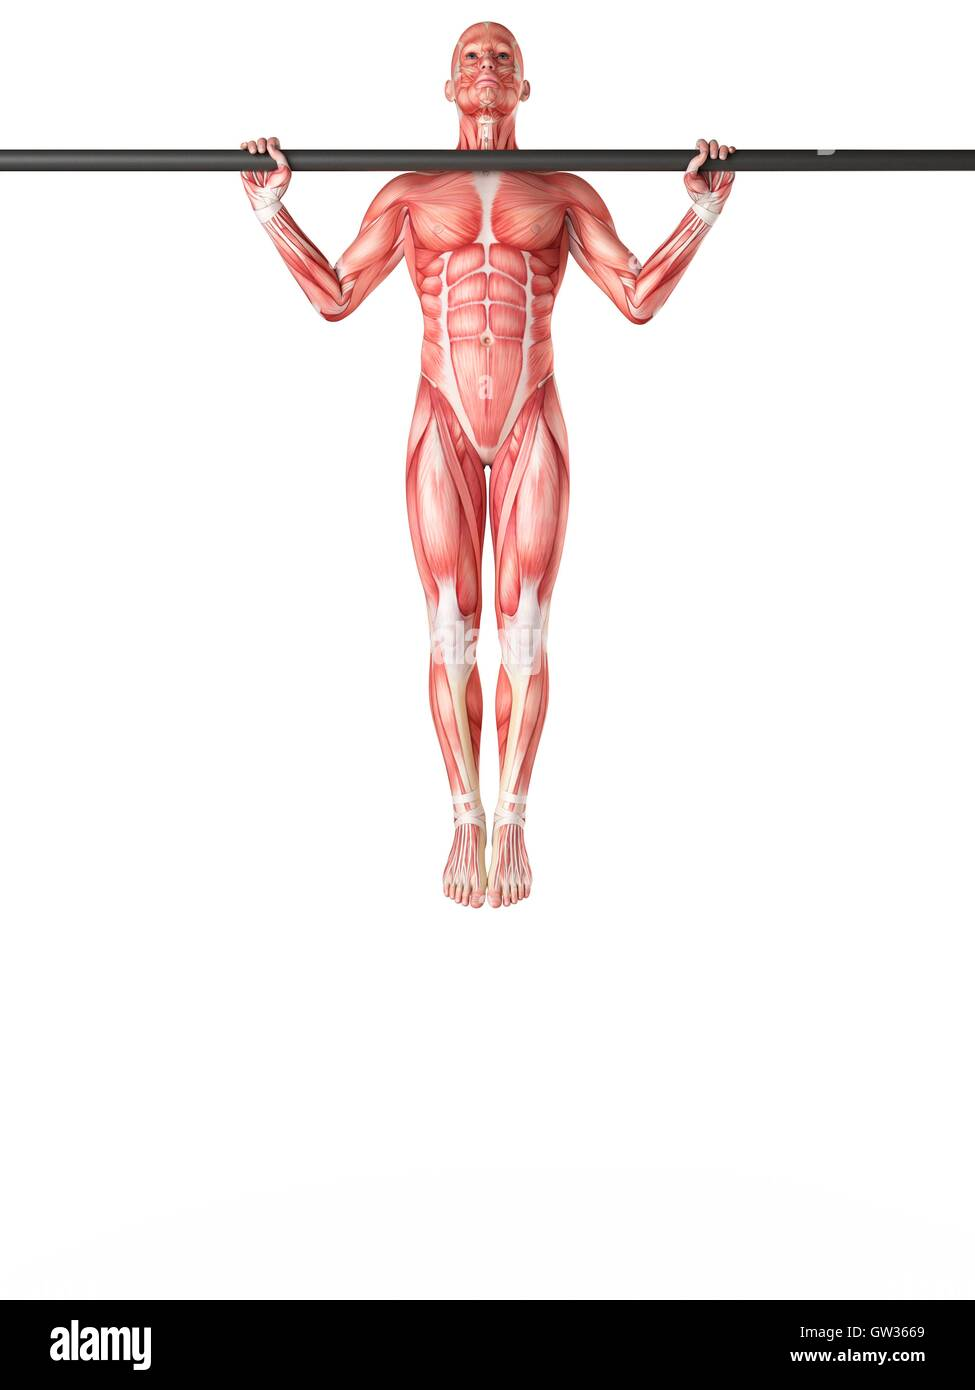 Muscular System Of Person Exercising On Pull Up Bar Illustration